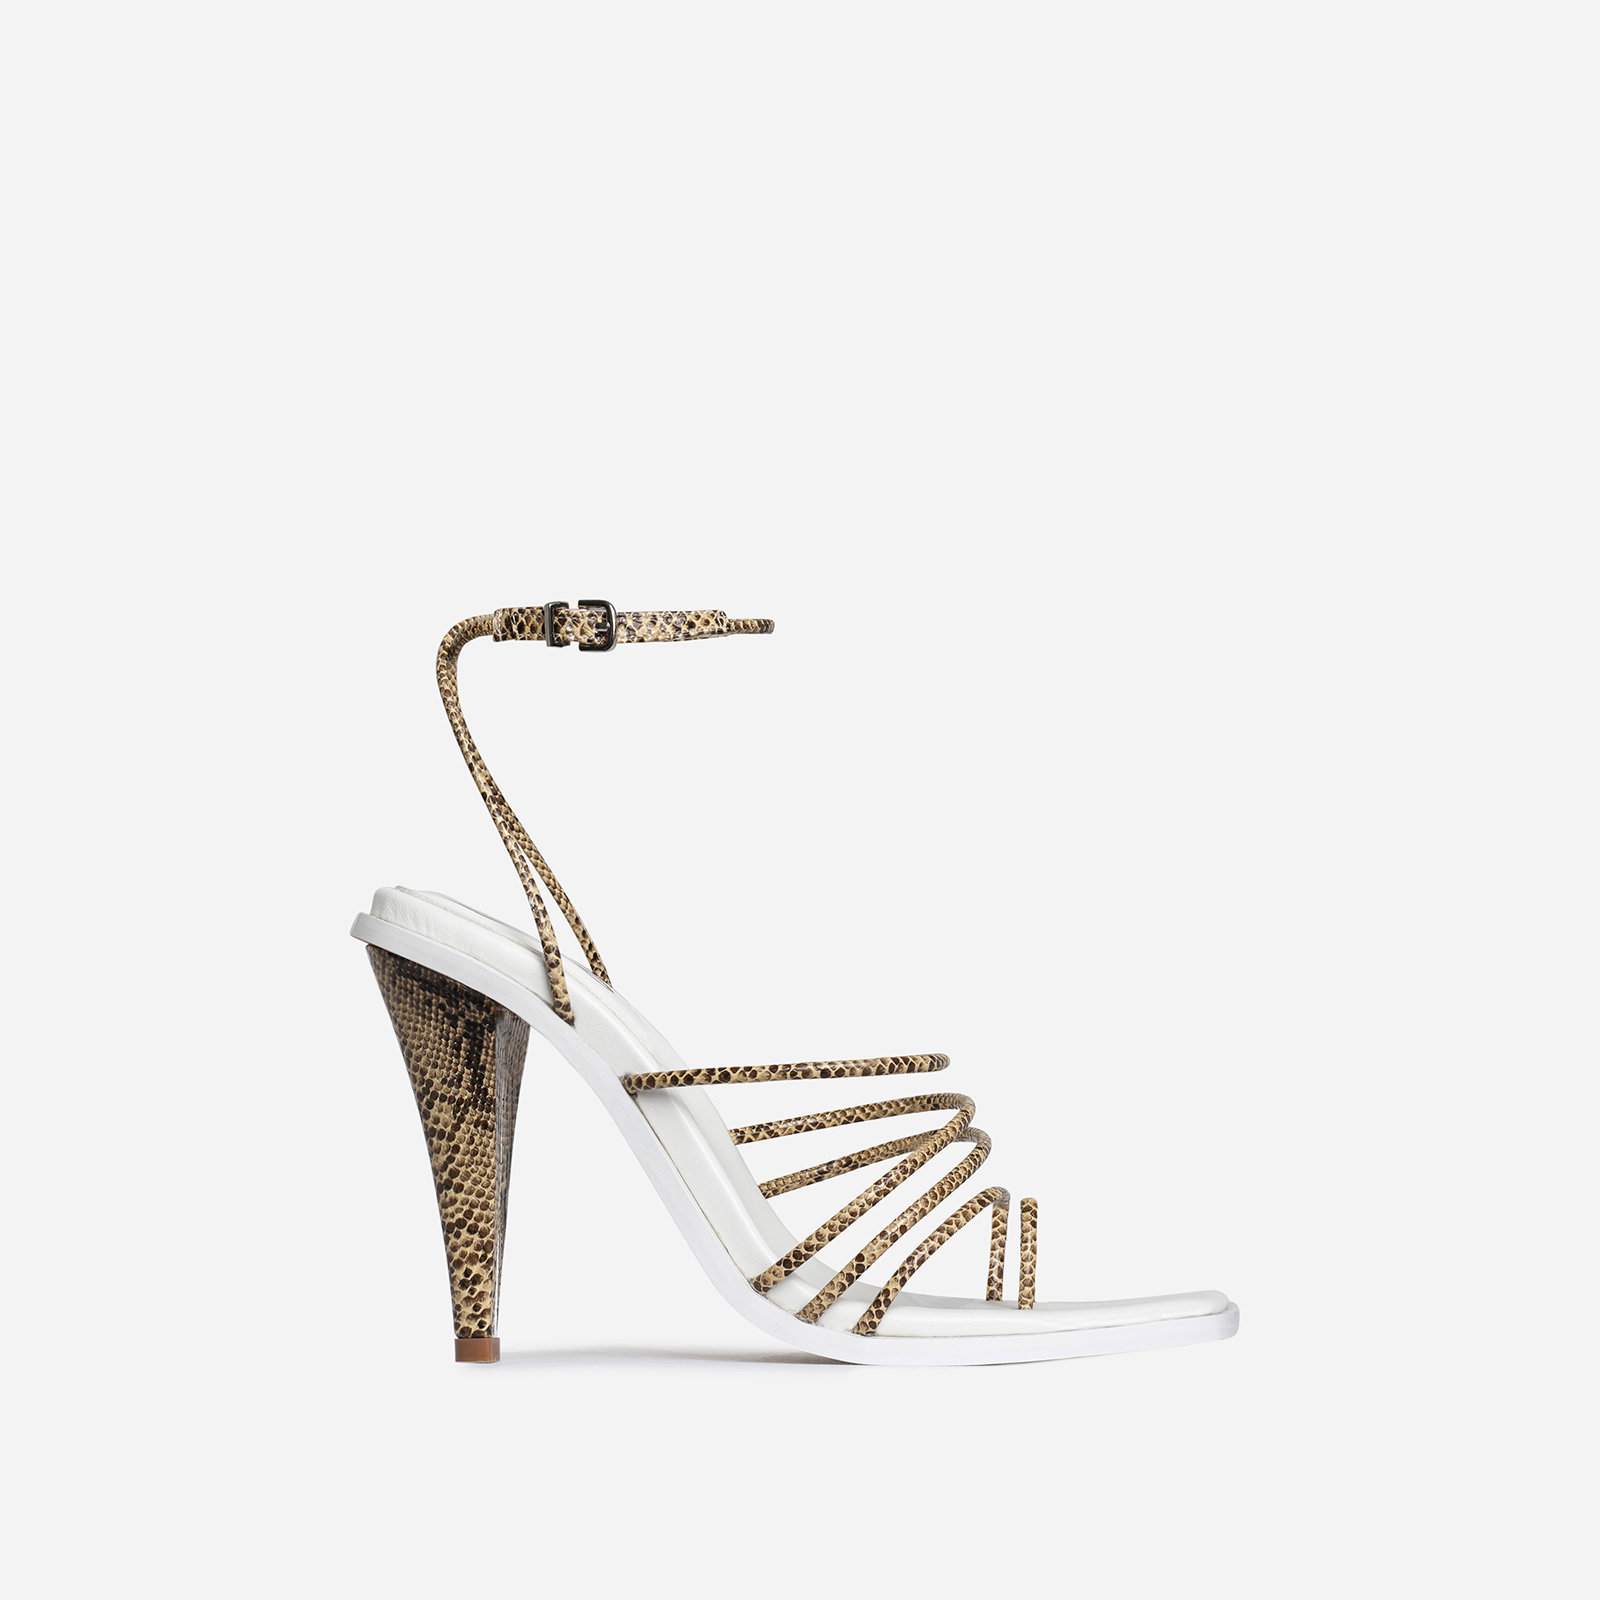 Amory Square Toe Strappy Heel In Nude Snake Print Faux Leather